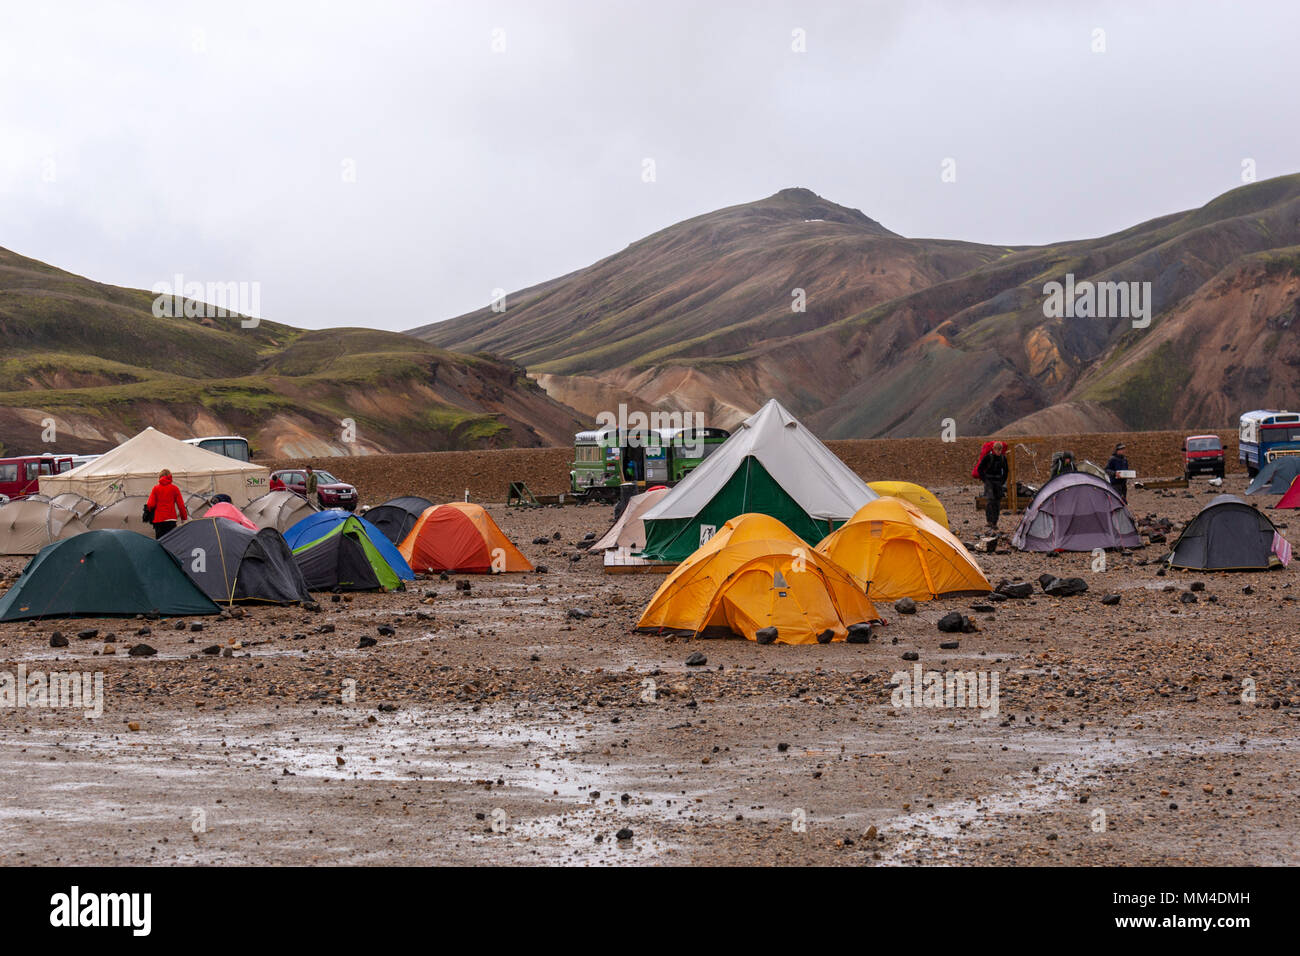 The campsite in the Landmannalaugar valley, Landmannalaugar,  Fjallabak Nature Reserve, Iceland - Stock Image